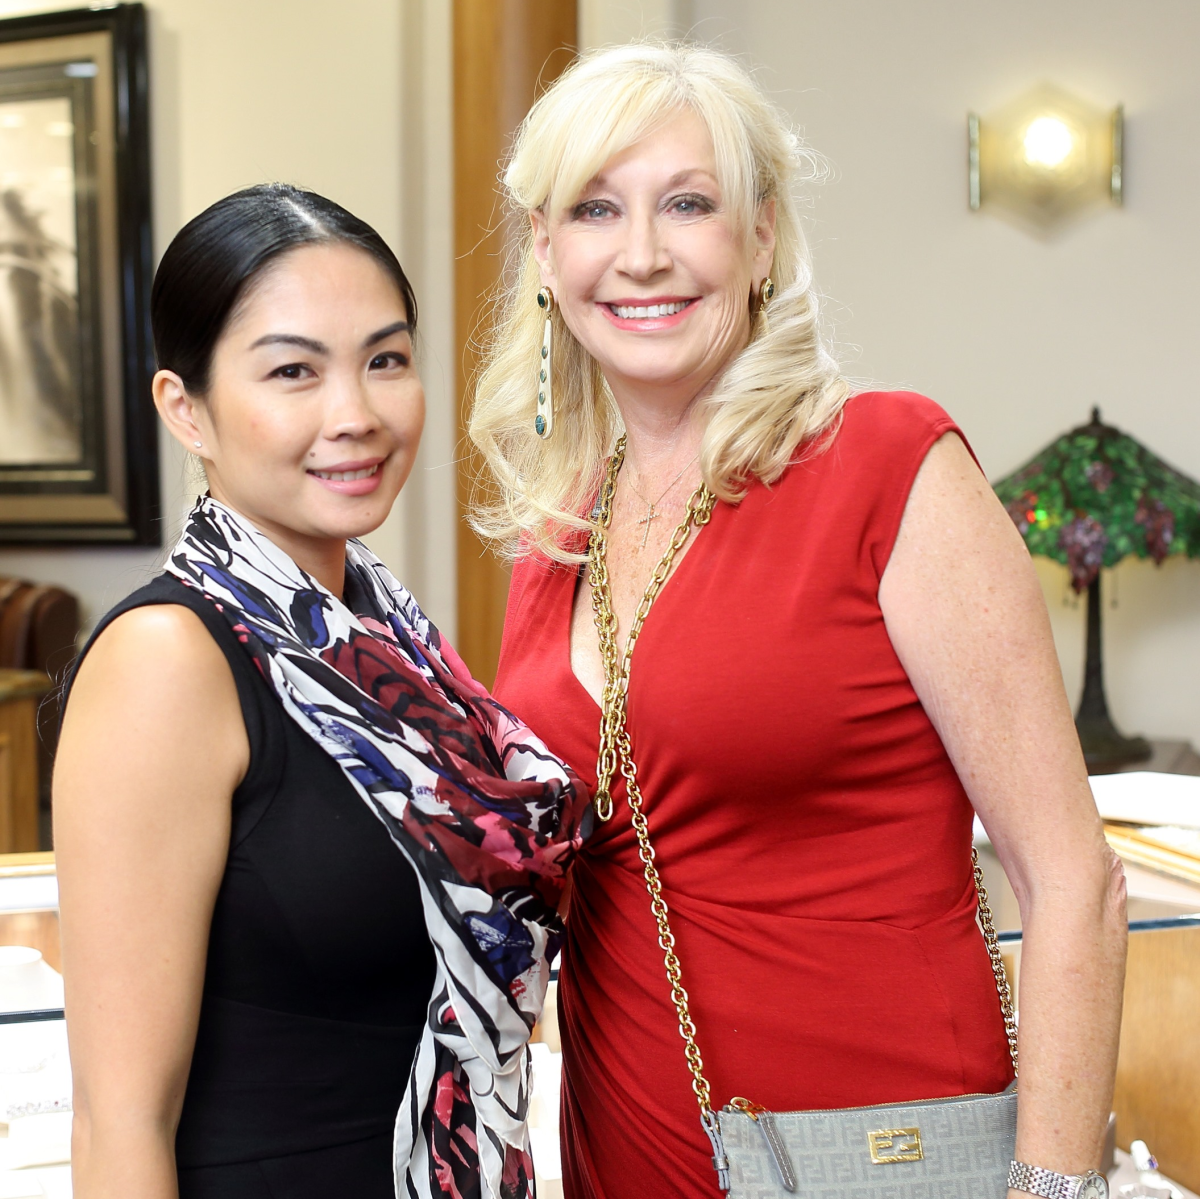 Houston, Una Notte kickoff party, October 2015, Nina Khantignavong, Vivian Dugger